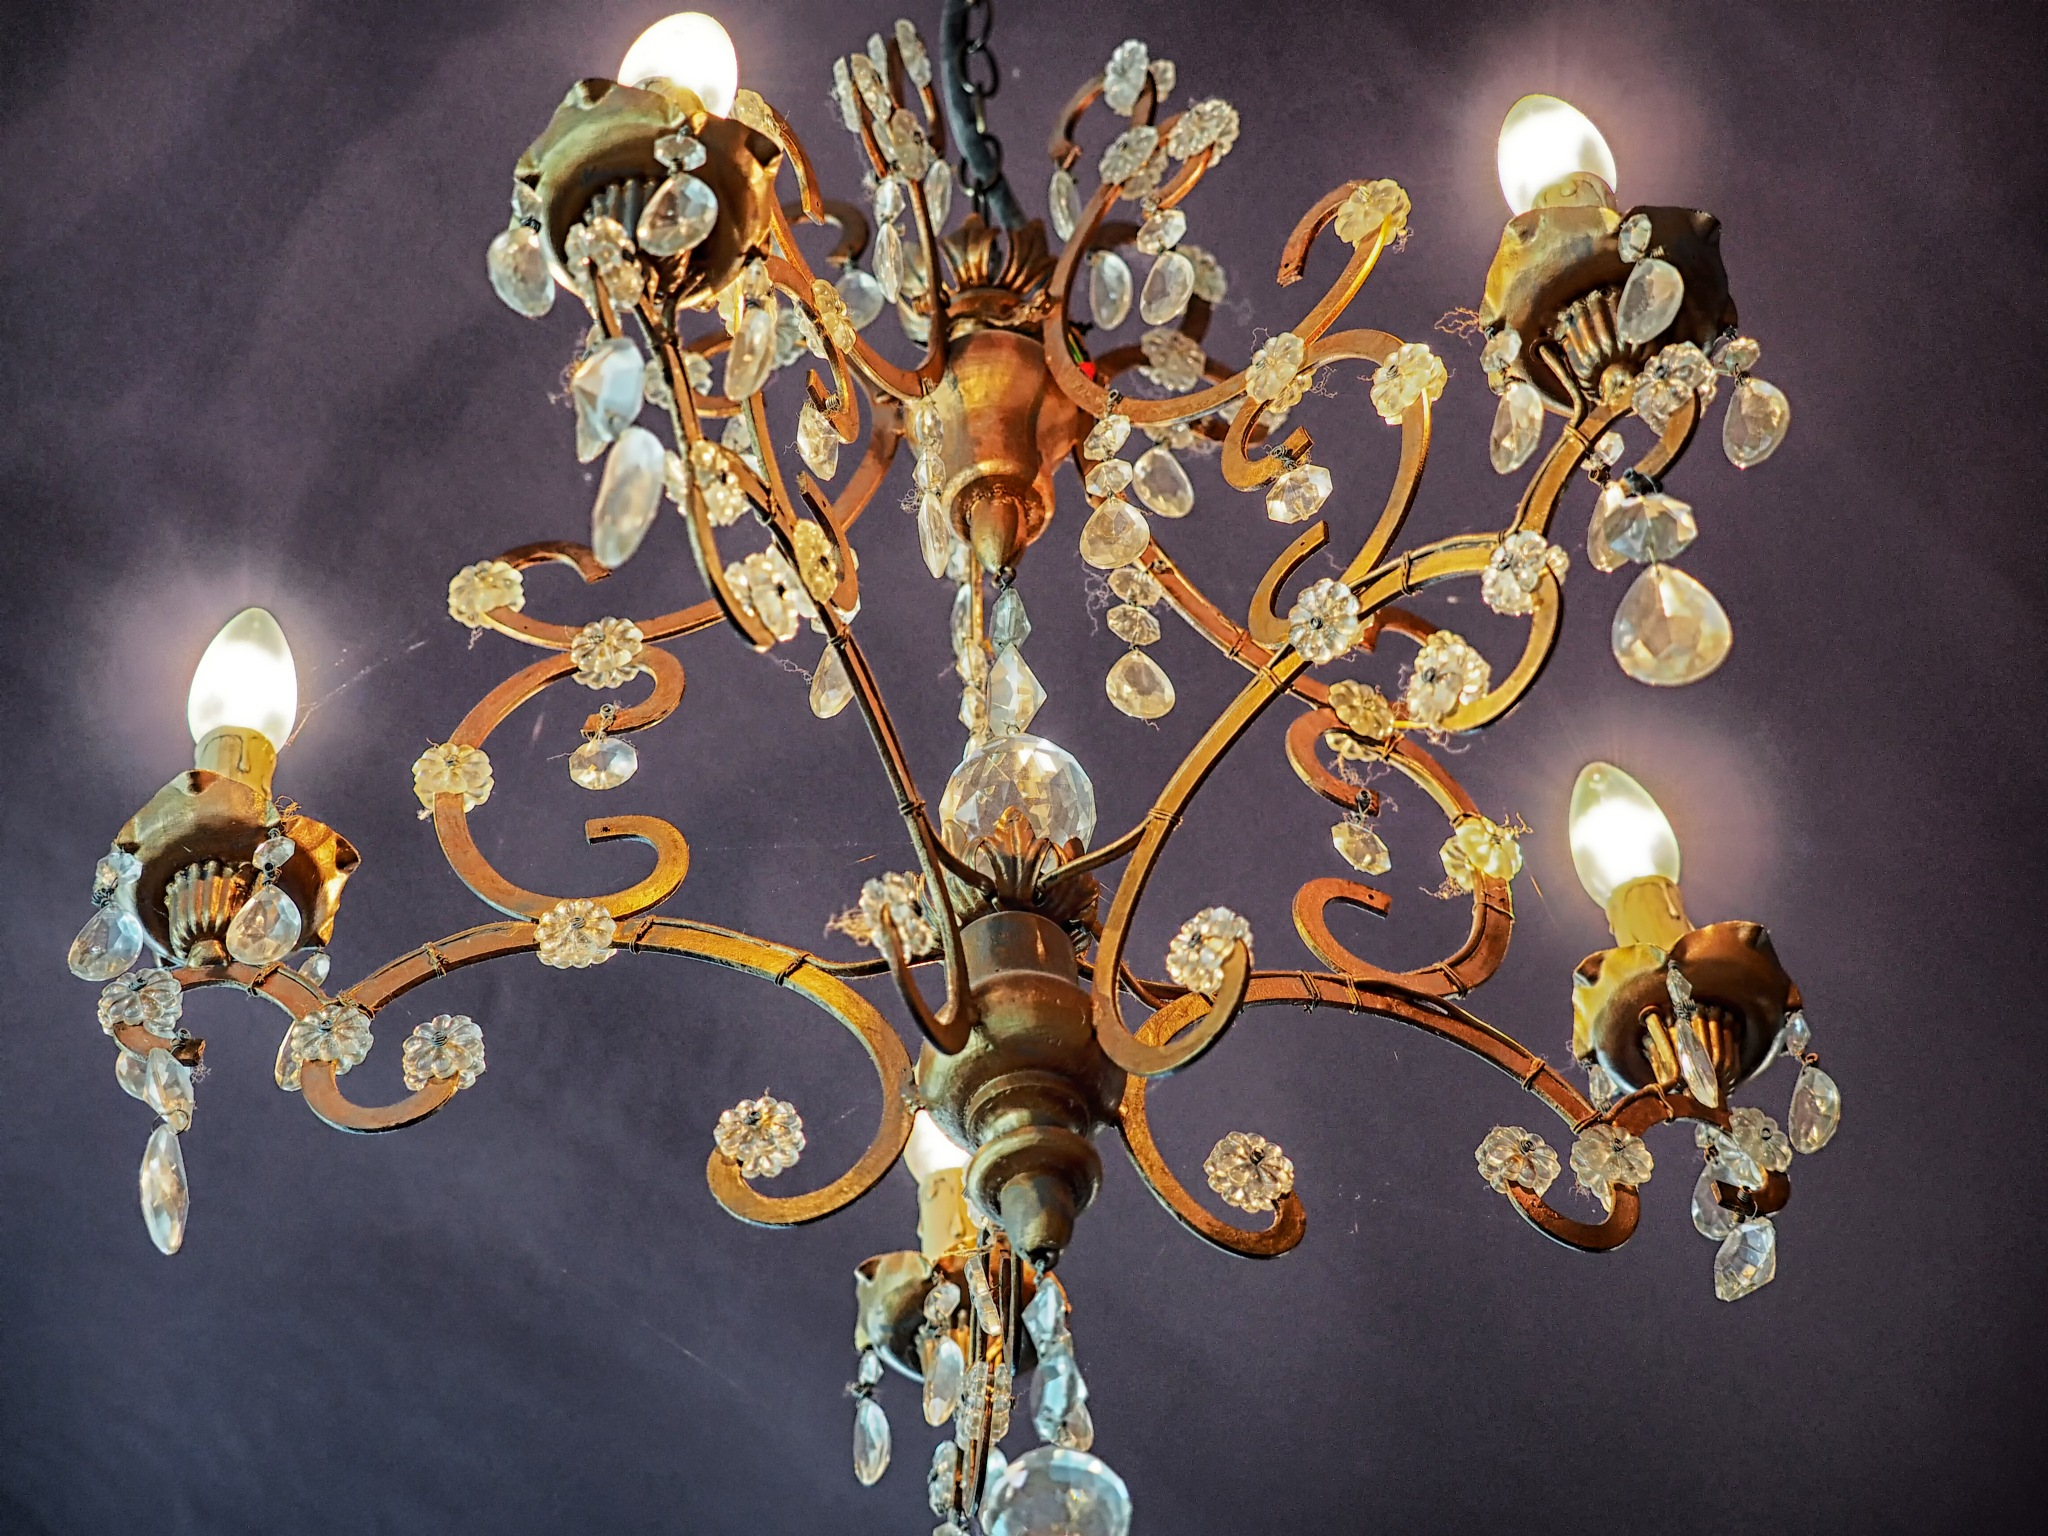 Detail of a chandelier 2 by Mike Roberts